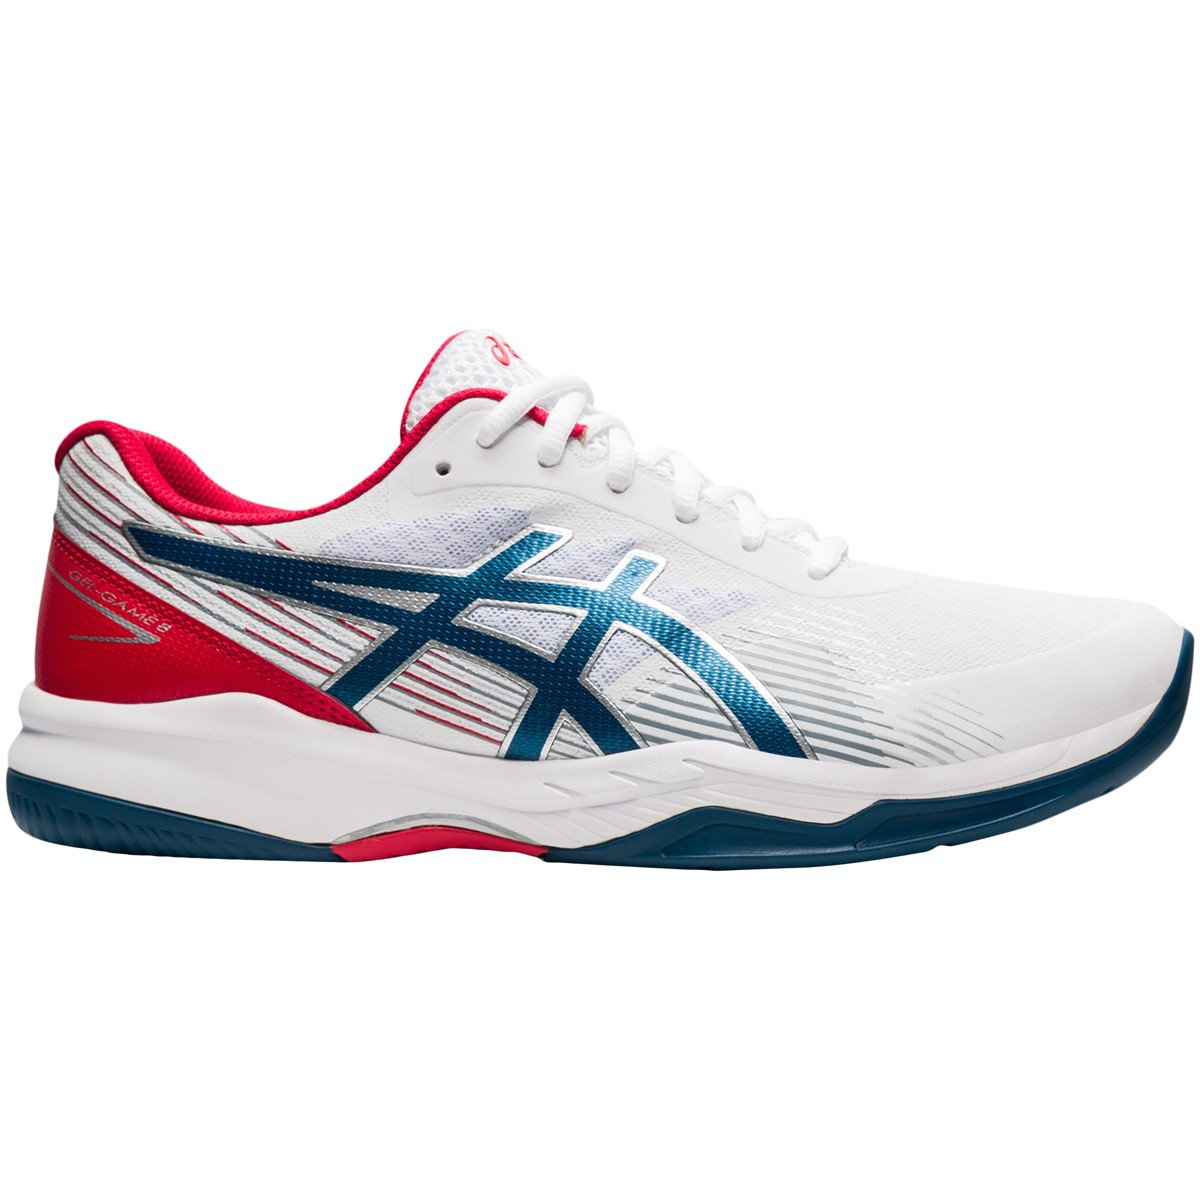 CHAUSSURES ASICS GEL GAME 8 TOUTES SURFACES - ASICS - Homme ...